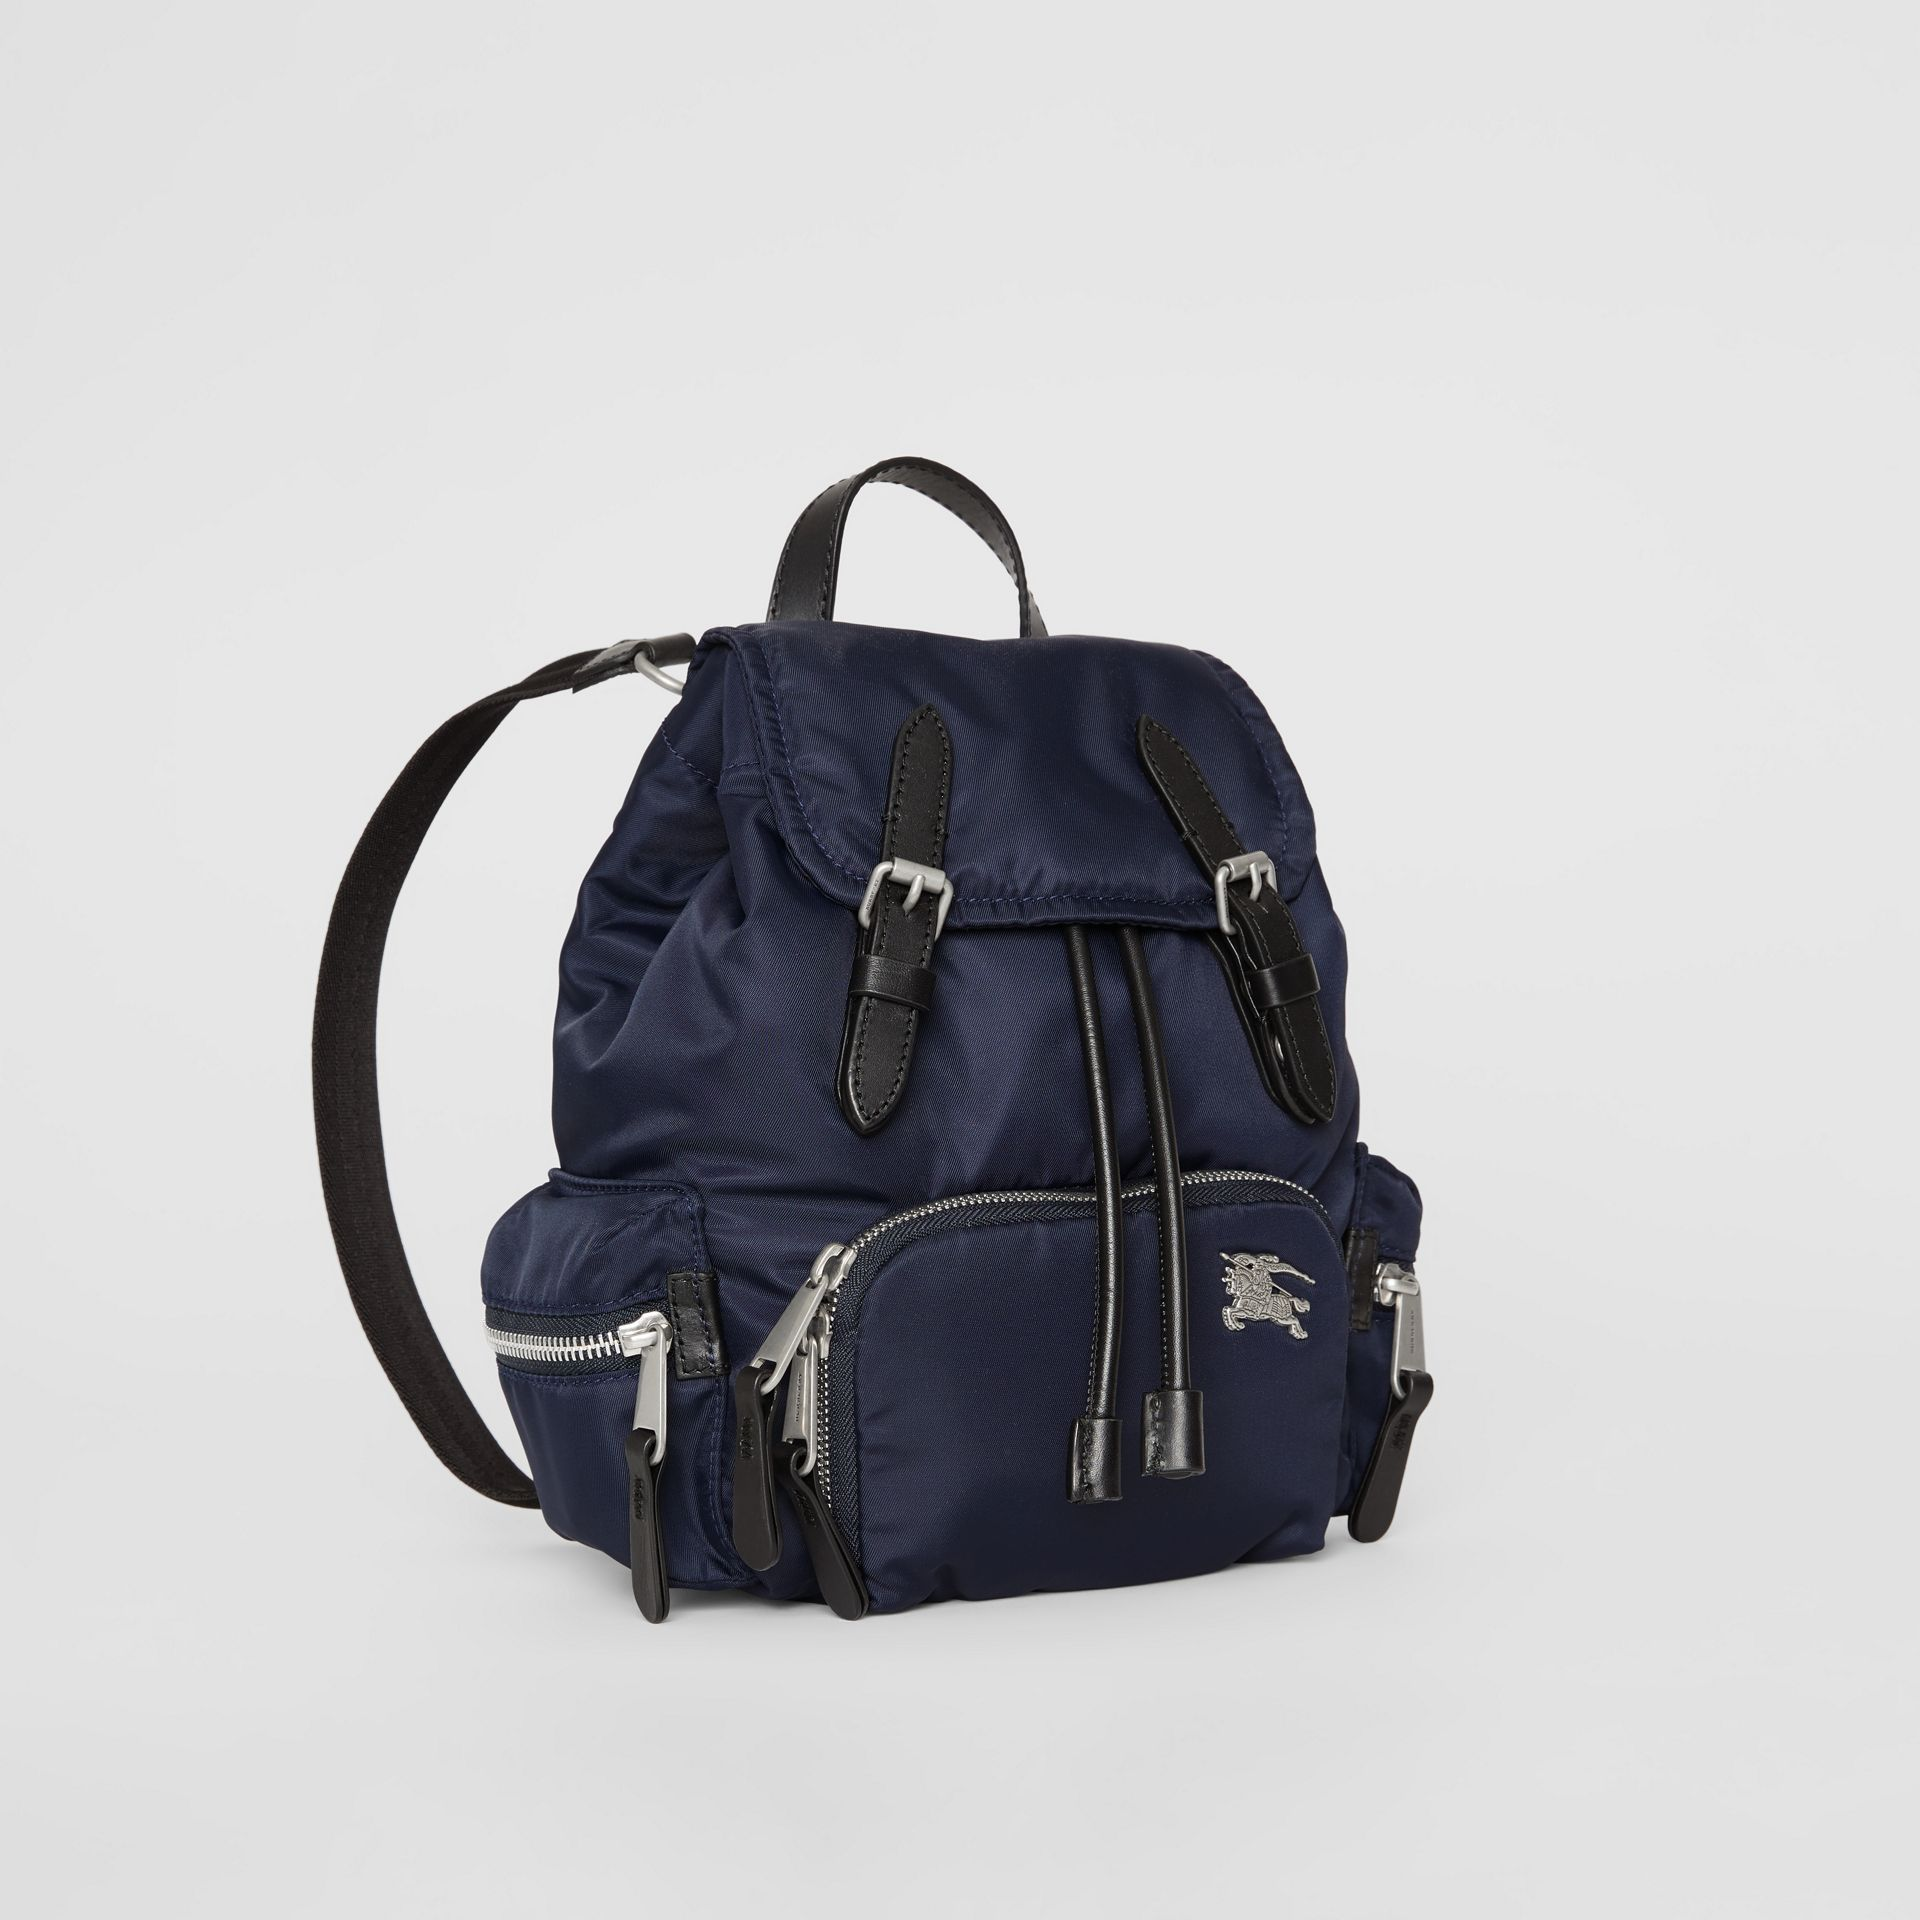 The Small Crossbody Rucksack in Puffer Nylon in Ink Blue - Women | Burberry - gallery image 4